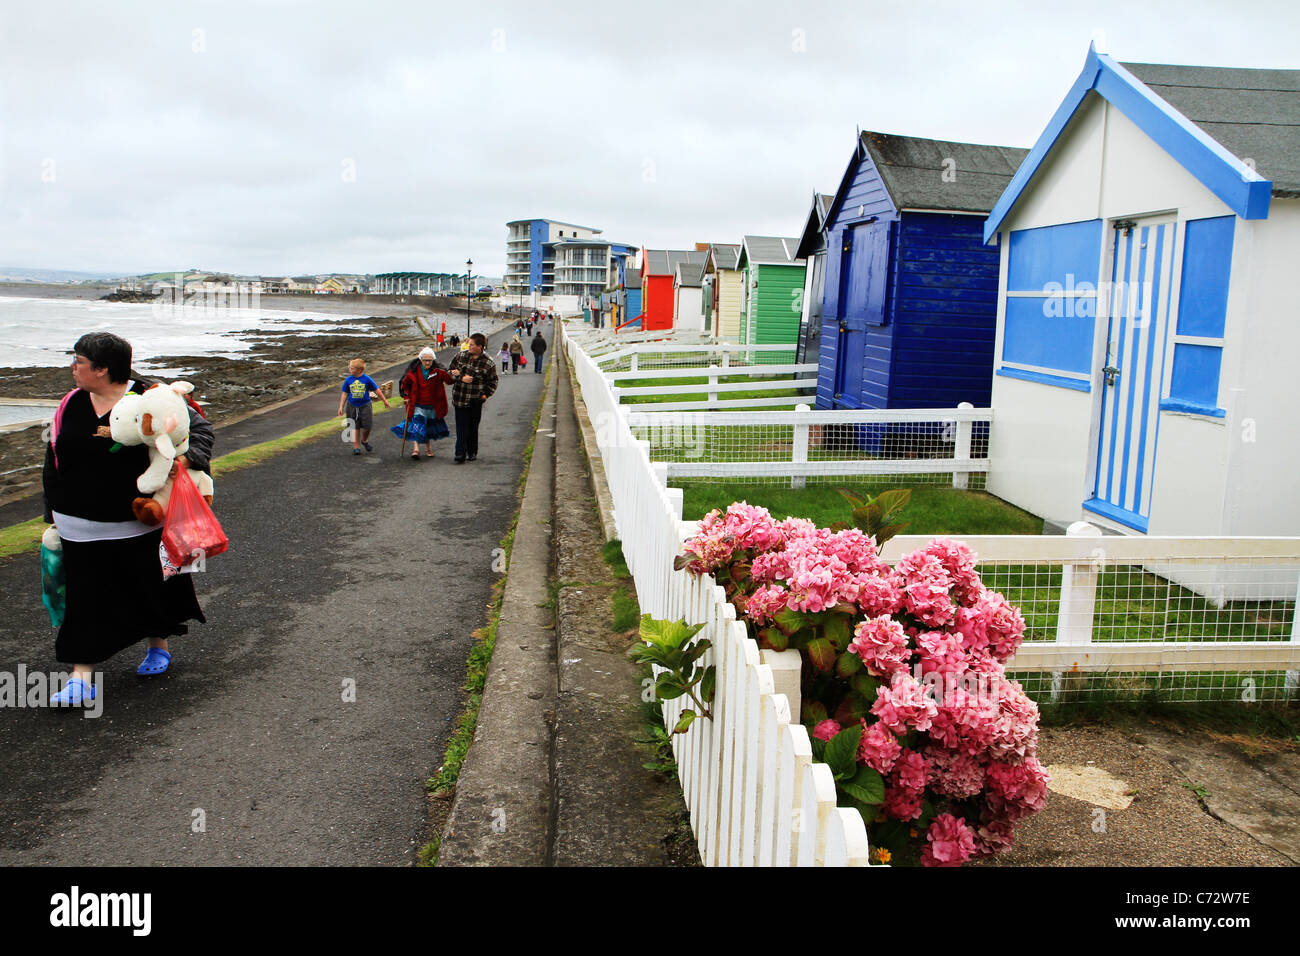 Holidaymakers and Beach Huts on seafront at Westward Ho!, North Devon UK - Stock Image